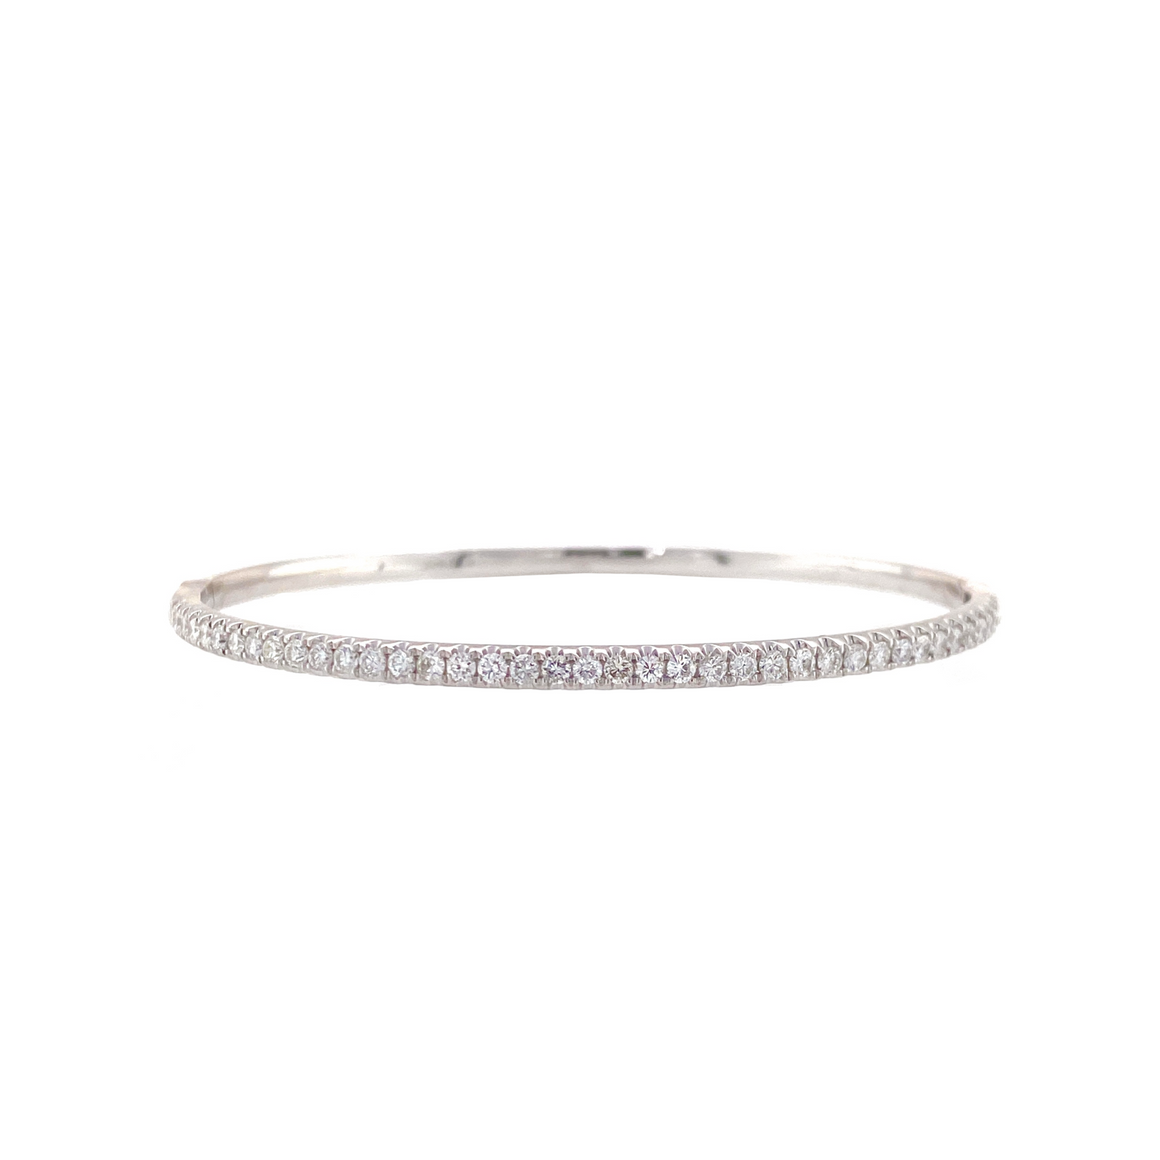 White Gold Thin Diamond Bangle - Lesley Ann Jewels